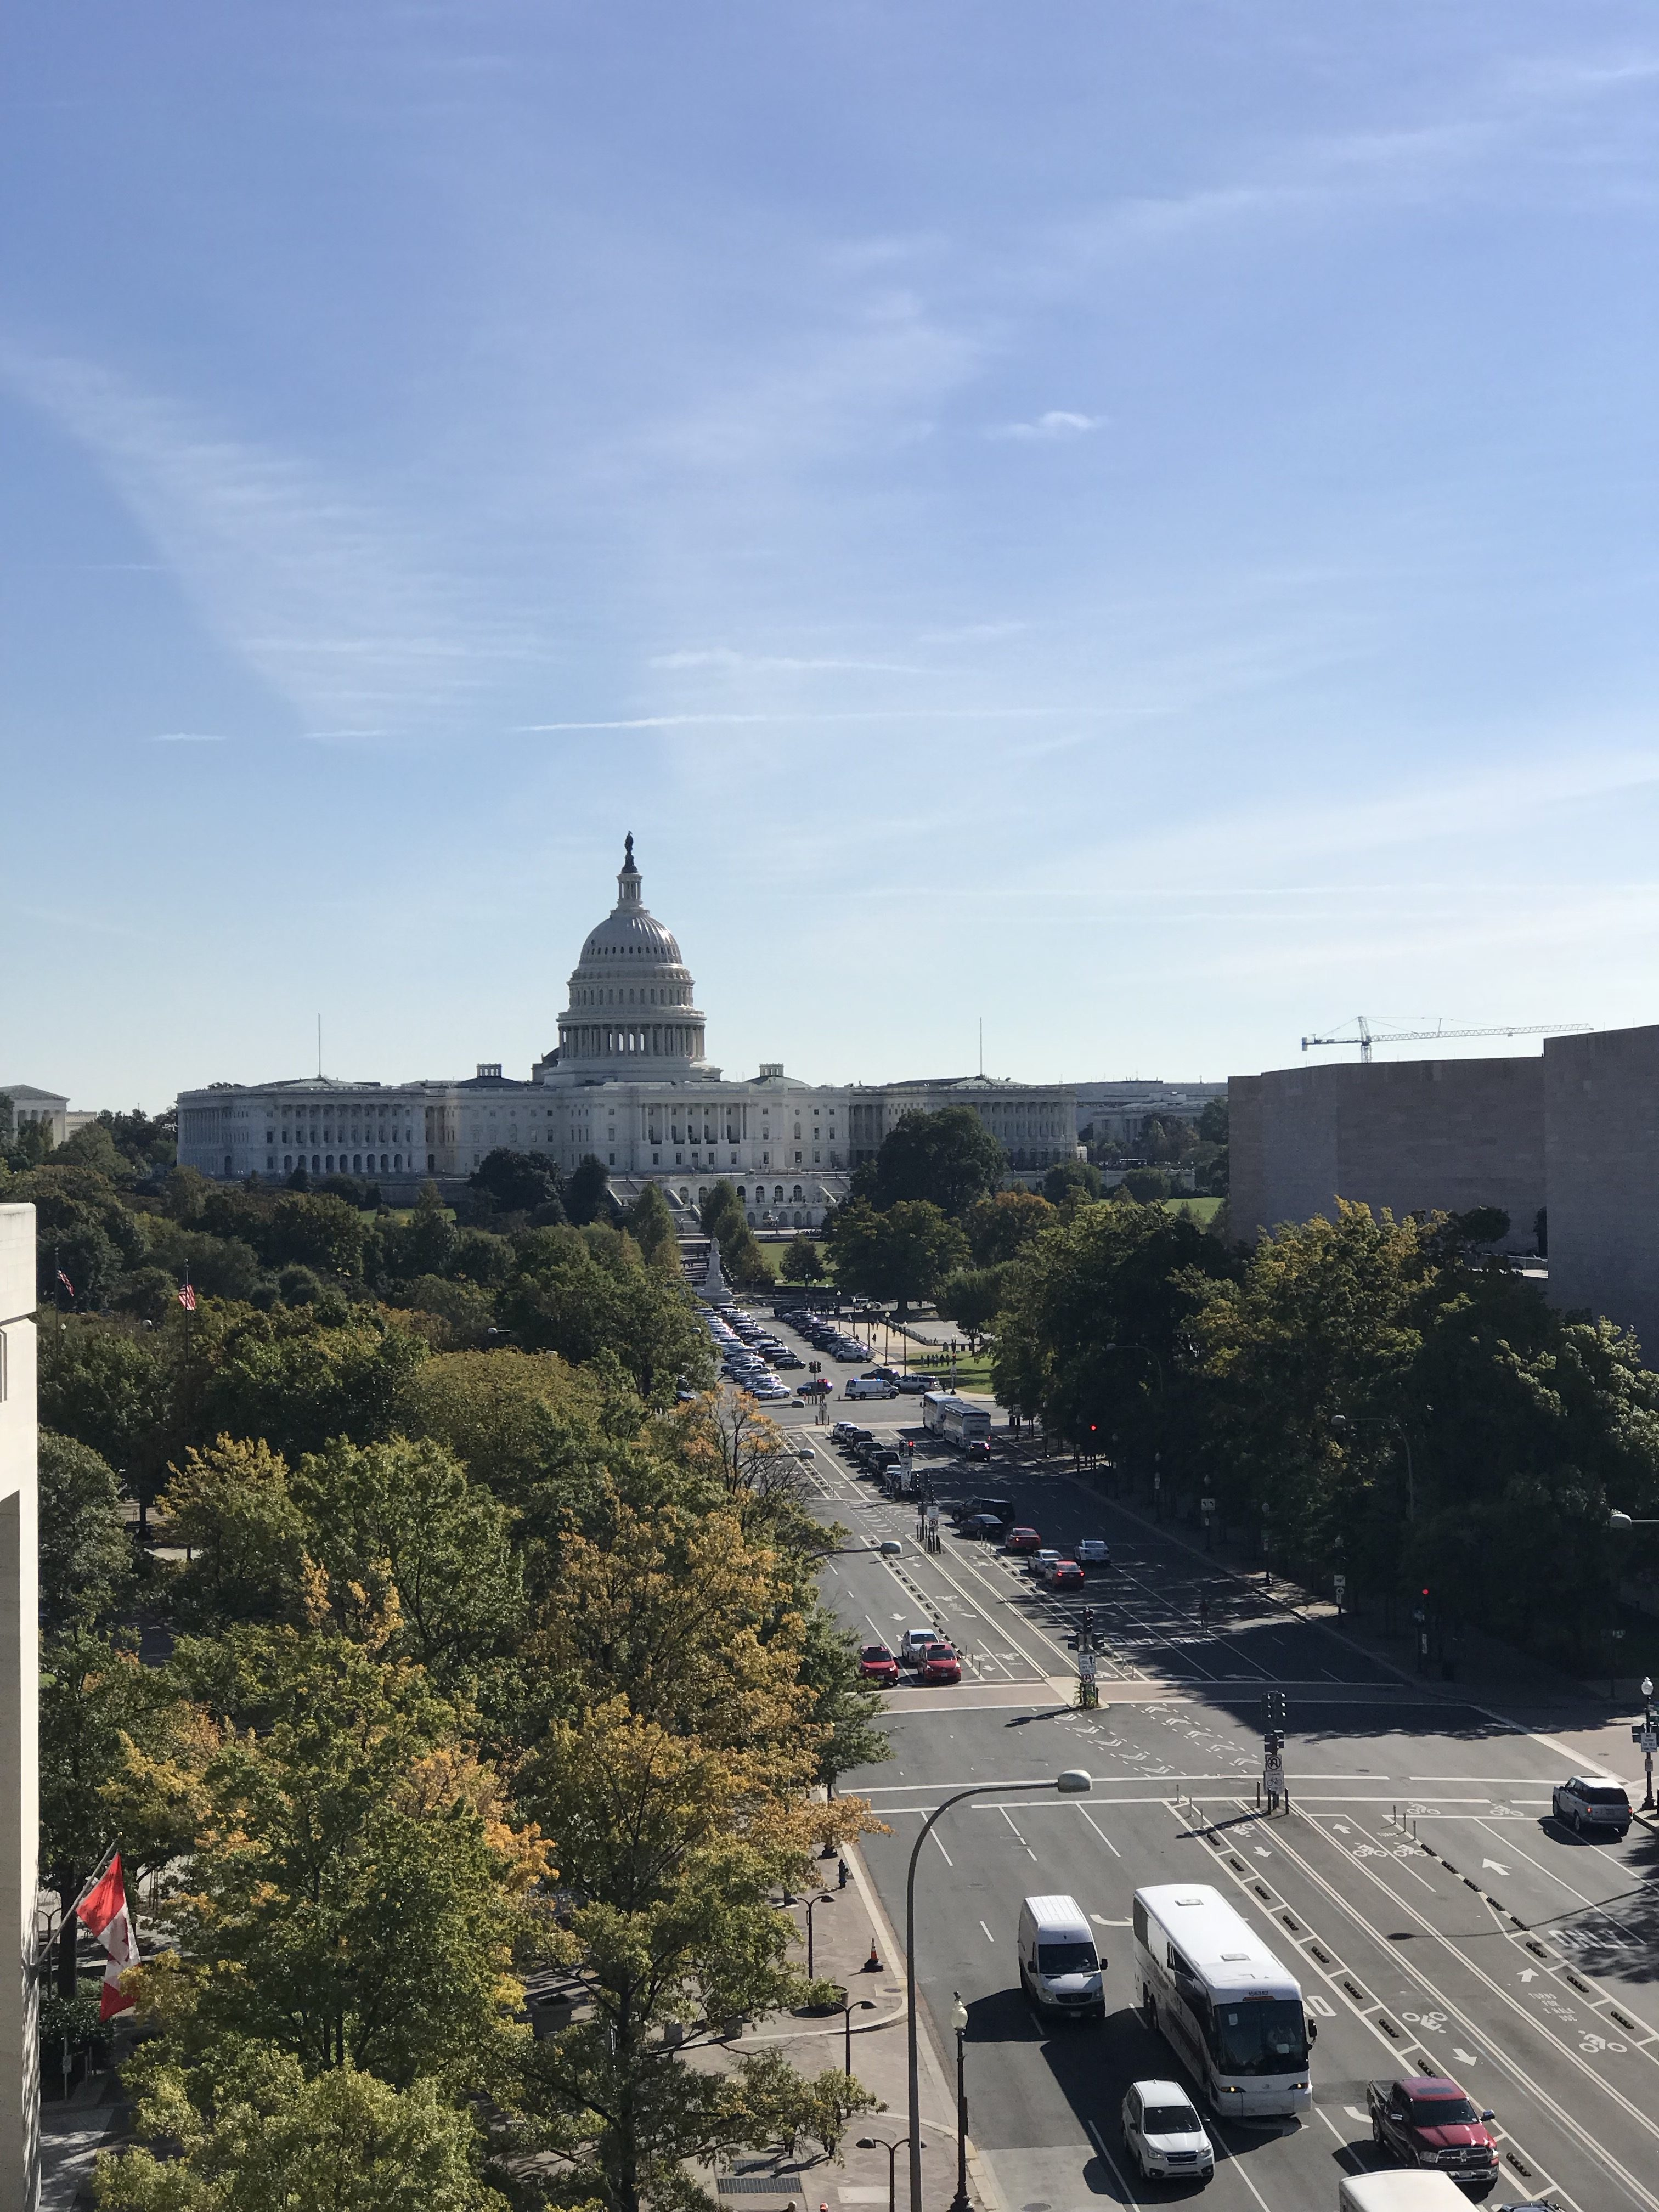 A Day in D.C.